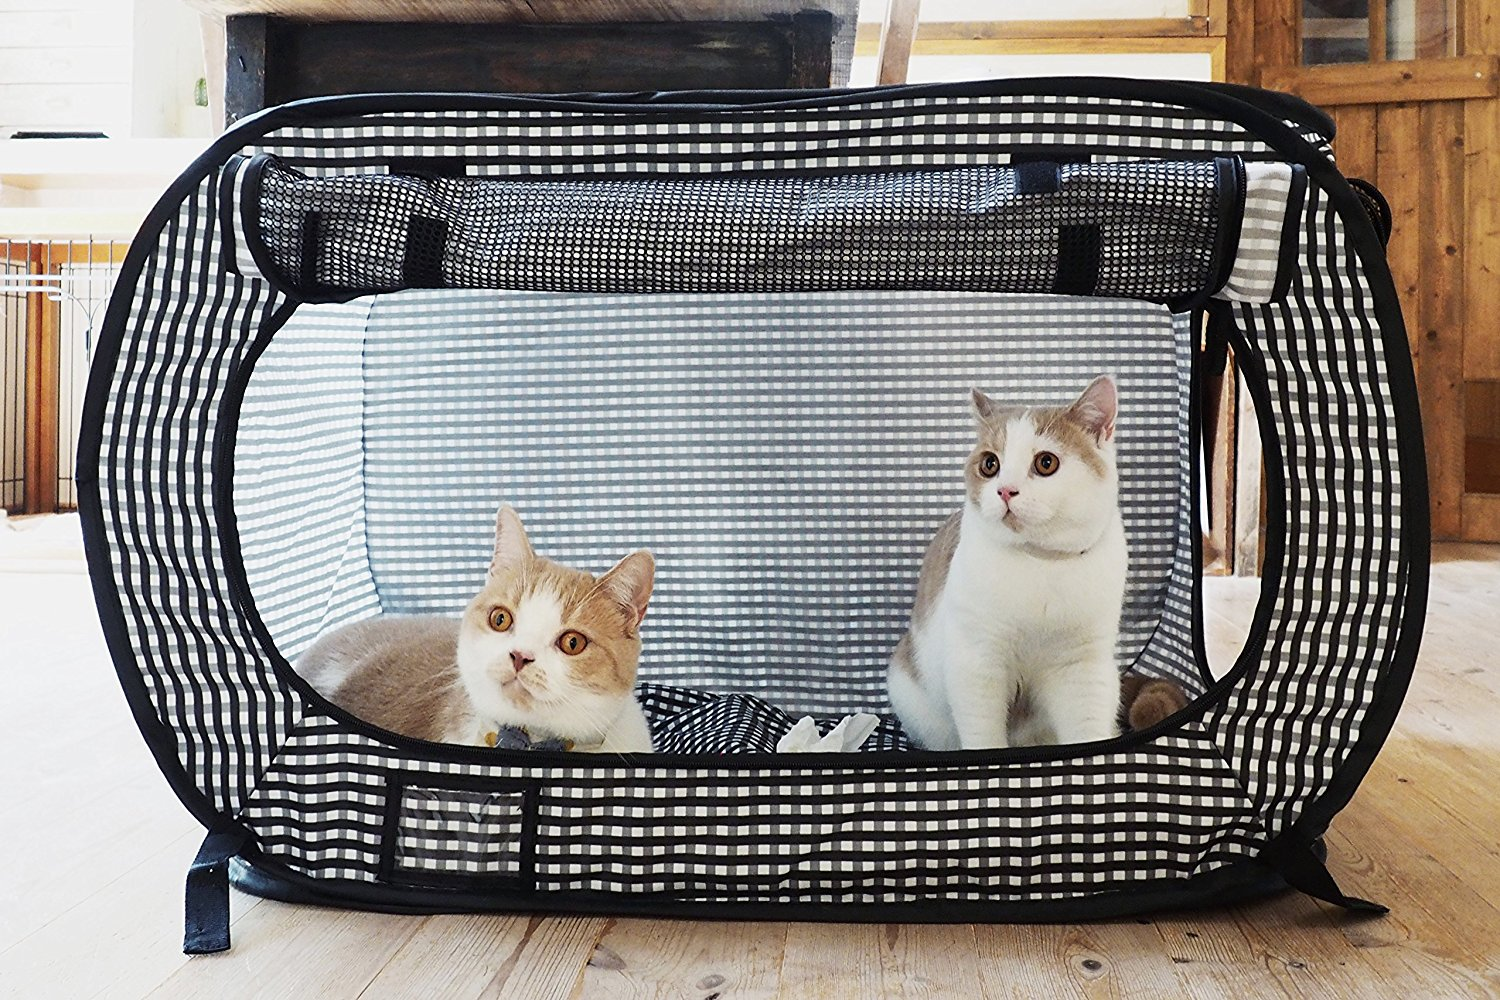 Portable Cat Cage Playpen Exercise Kennel Foldable Dogs Cat Indoor Outdoor Removable Mesh Shade Cover Travel Removable Cat Cages